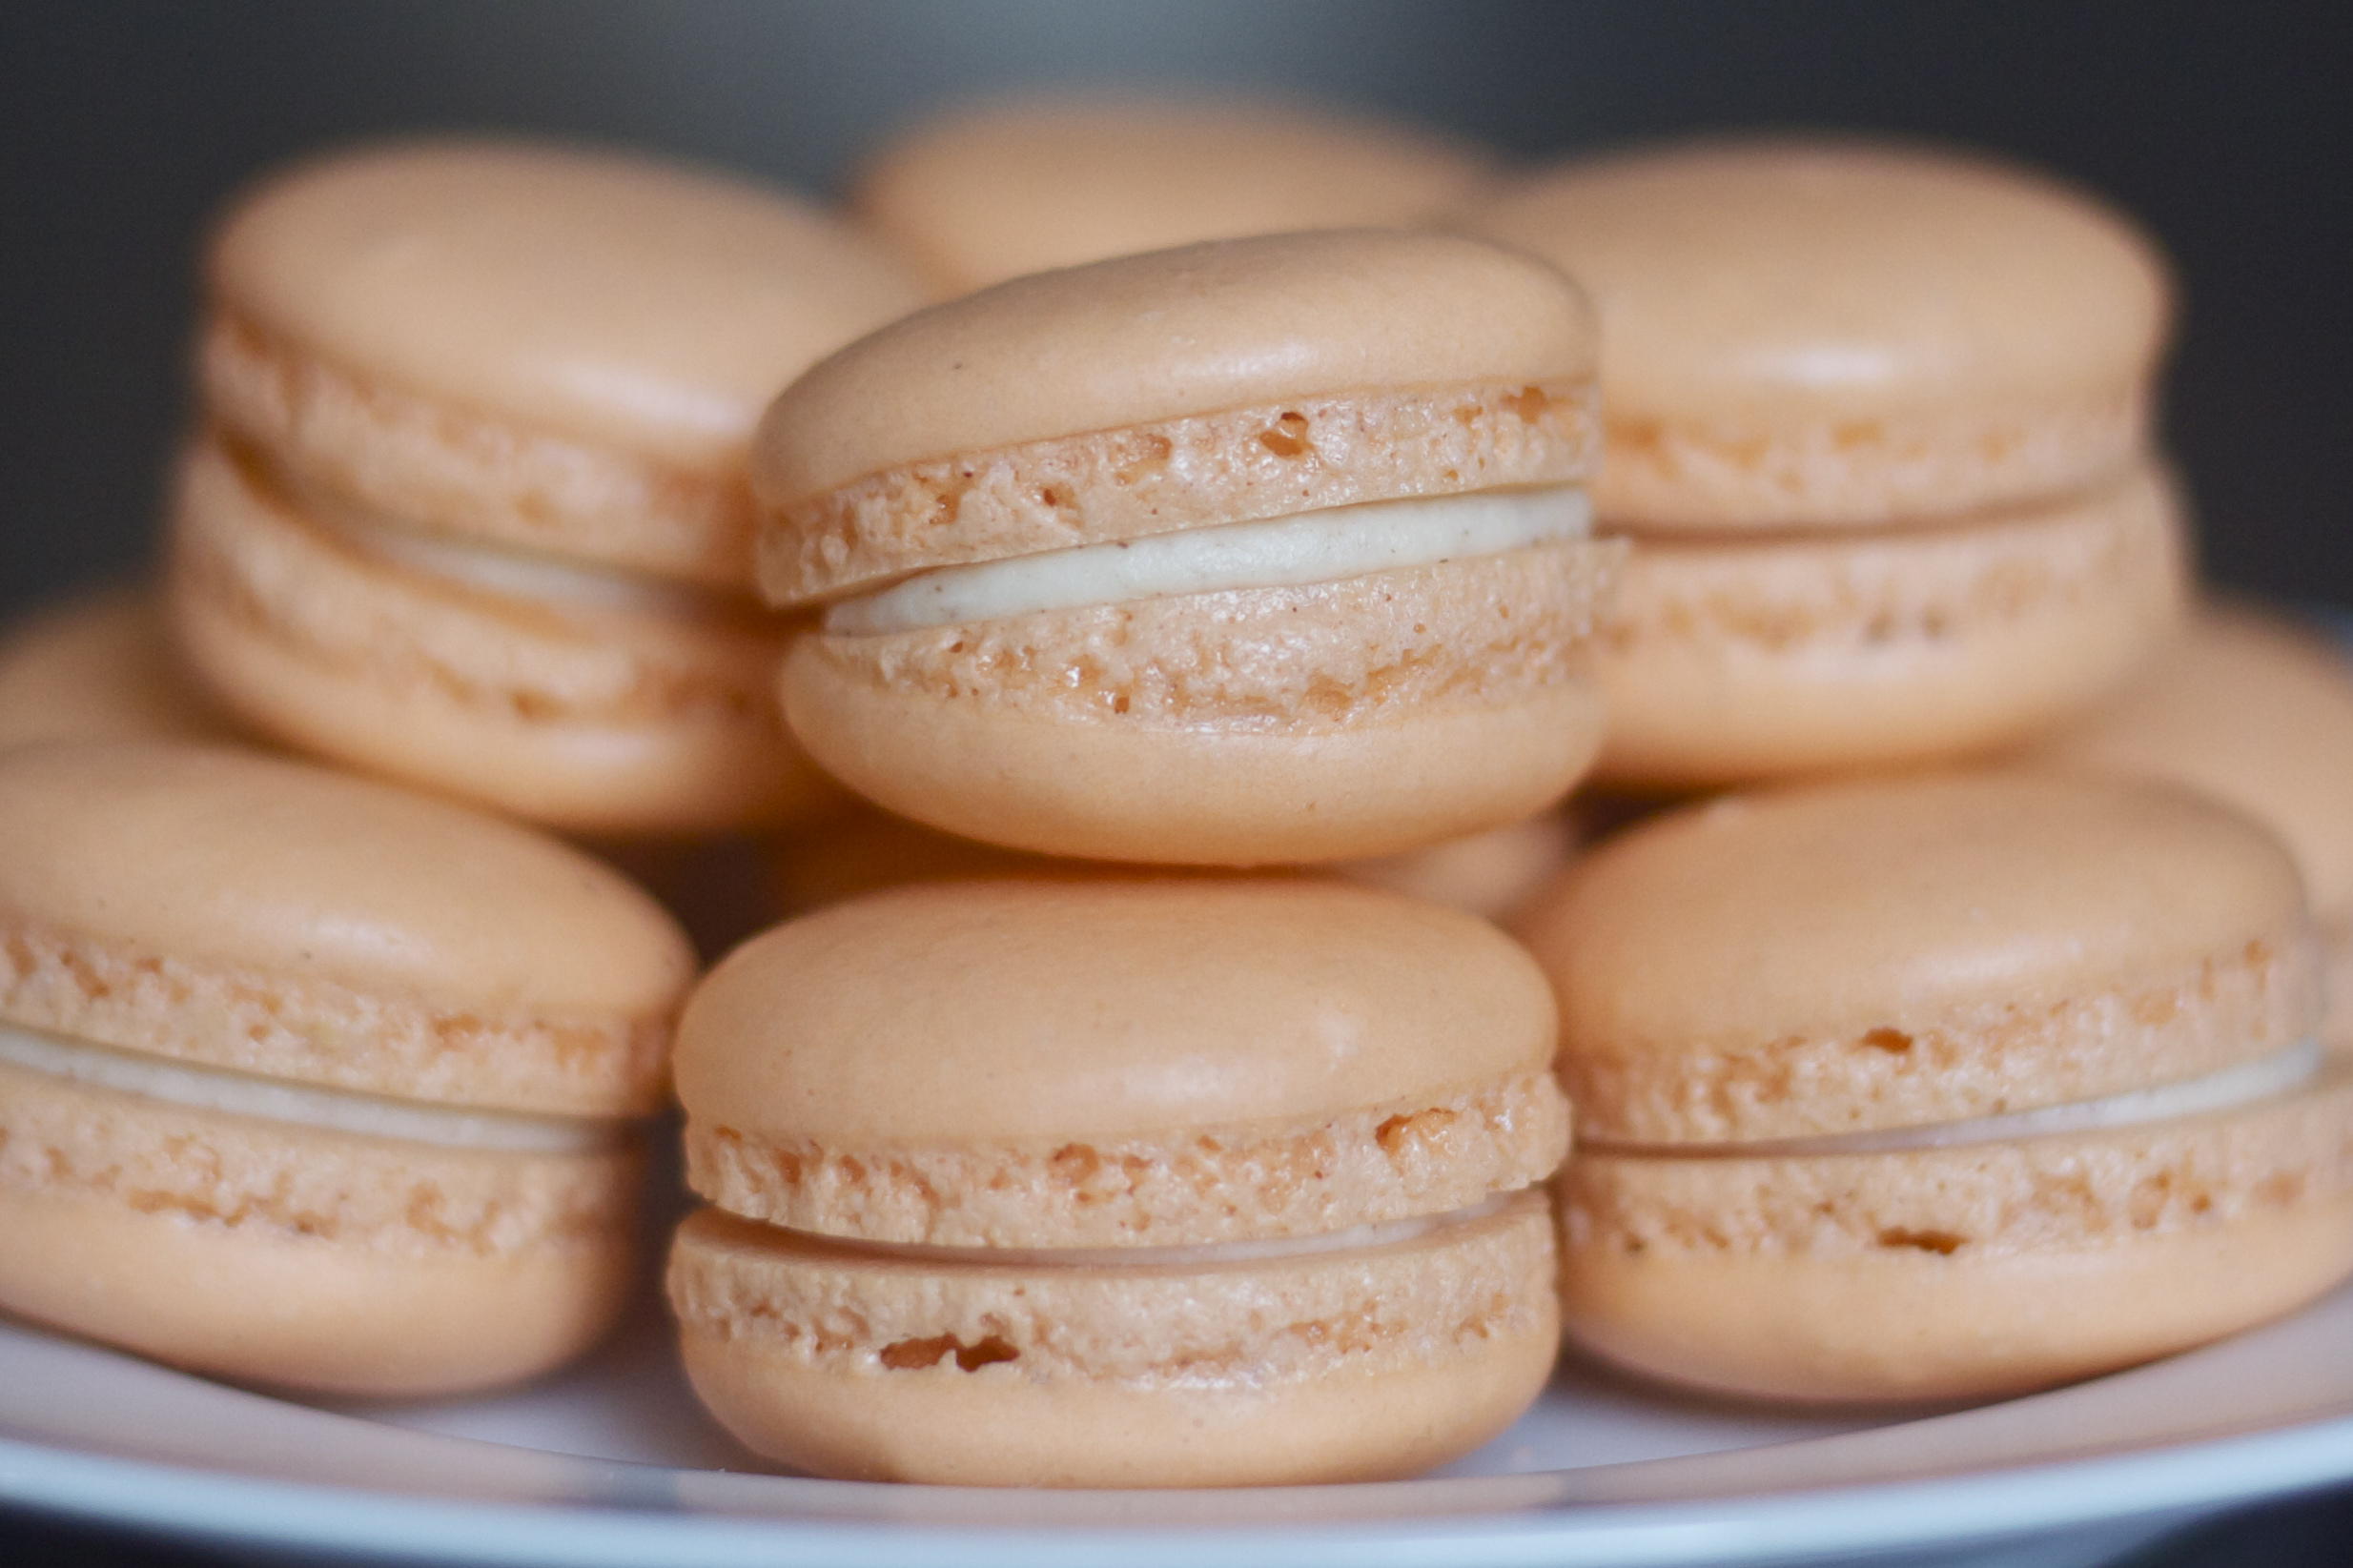 French macaron recipe and troubleshooting from Edible Times